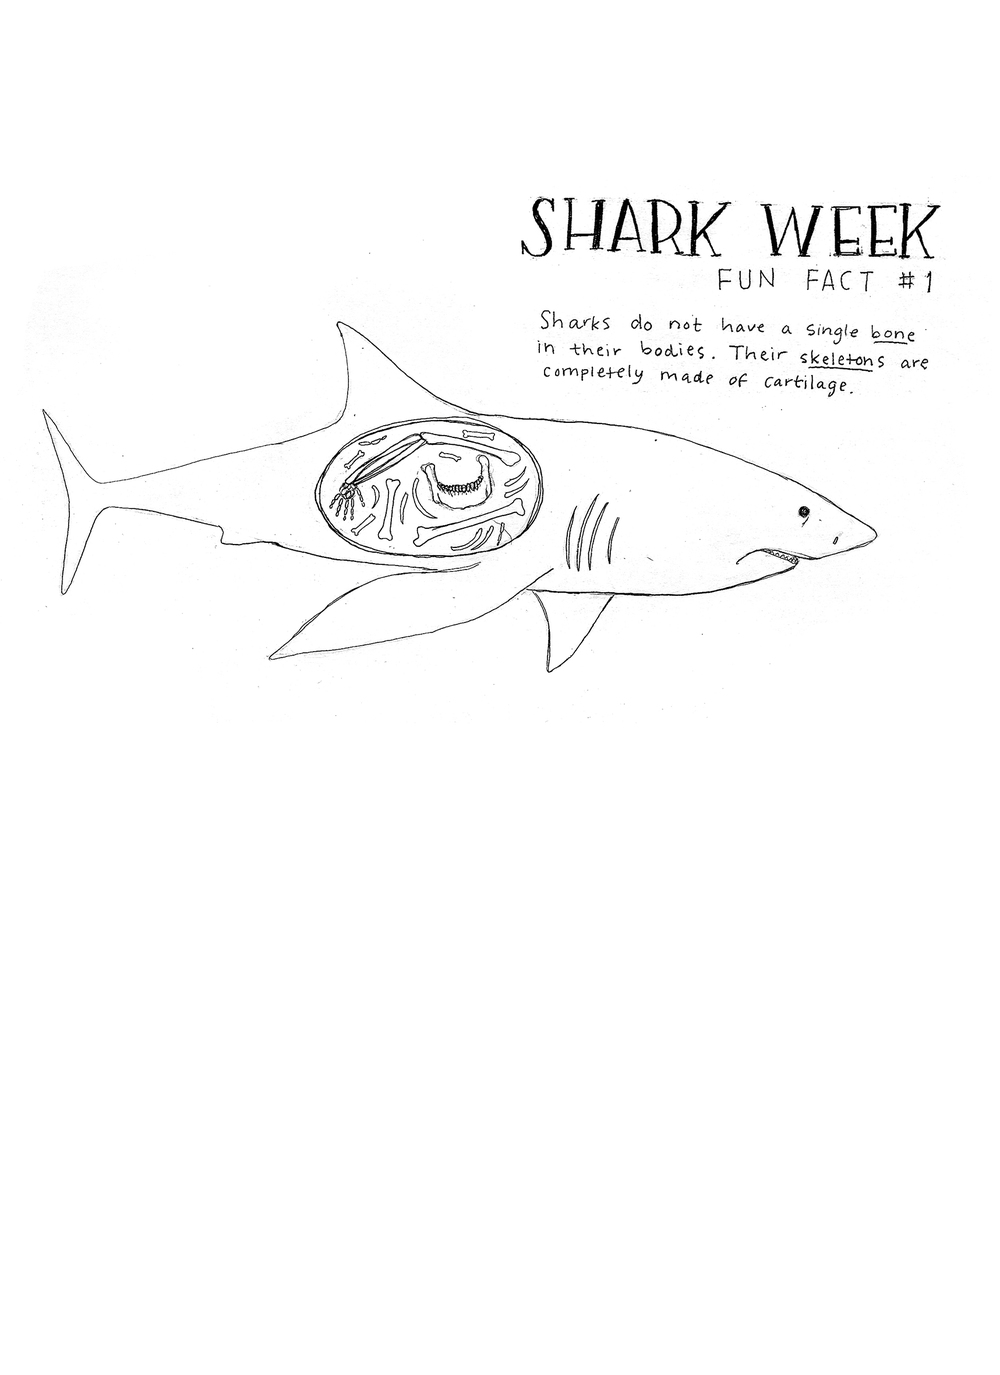 SharkWeek_fact1_edited.jpg